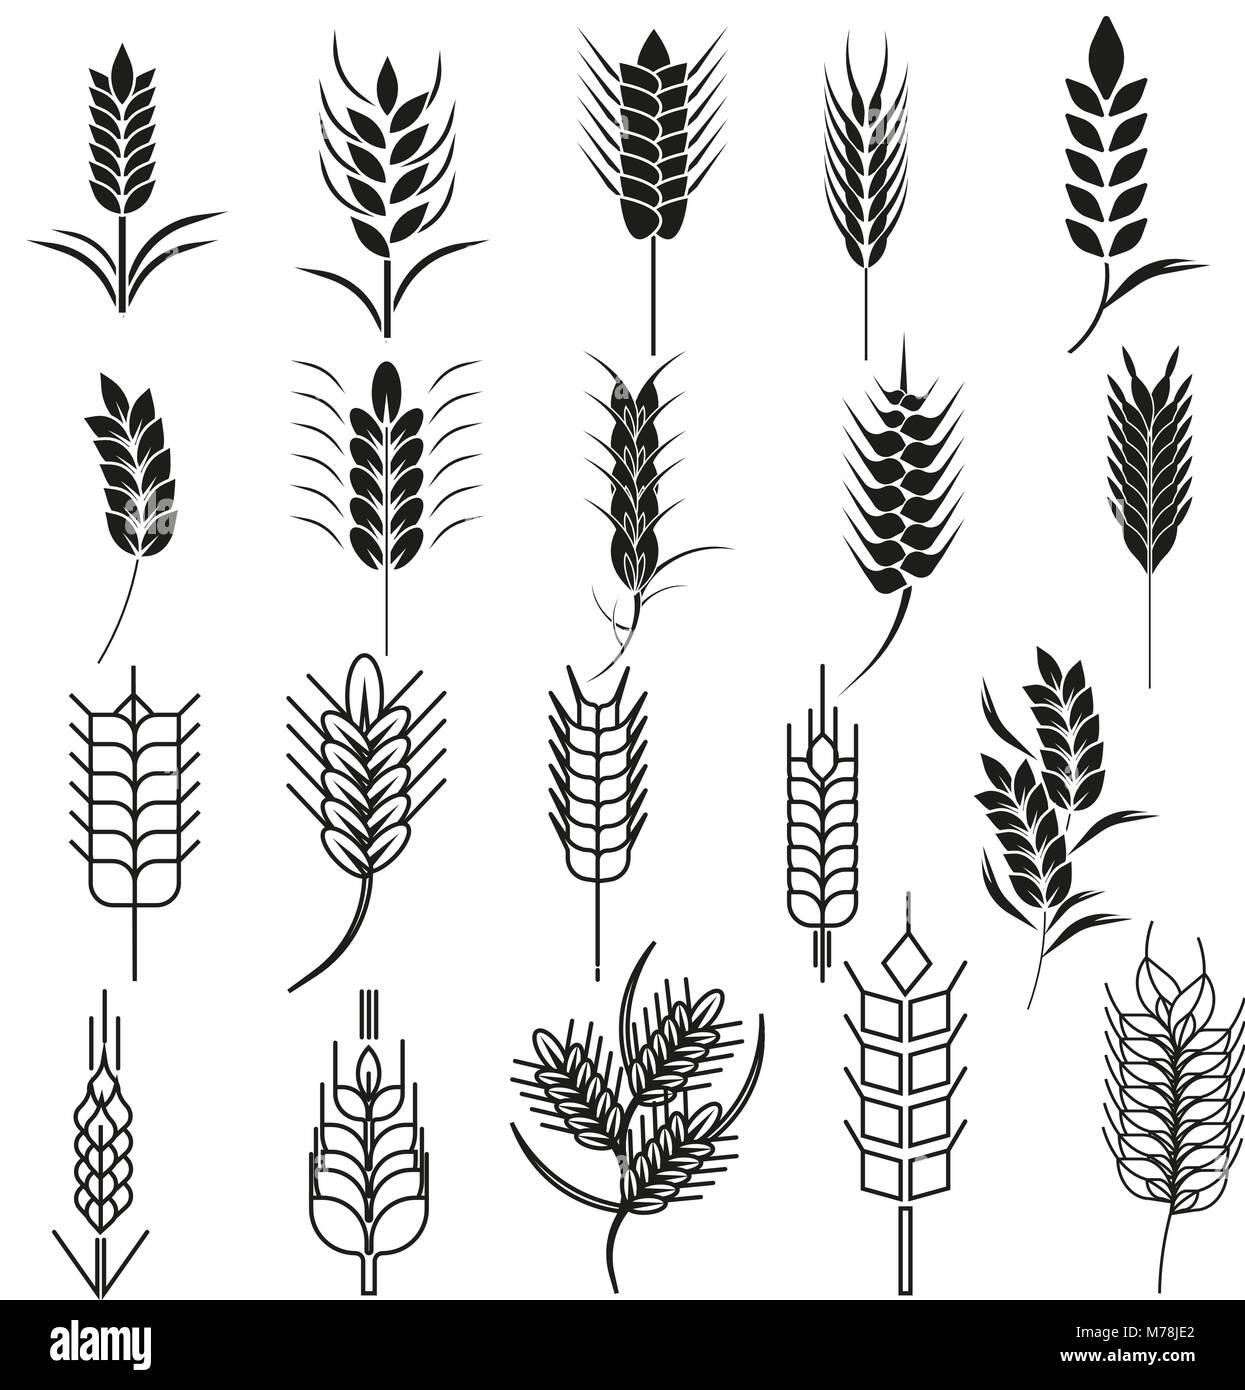 Sheaf of wheat symbolism images symbol and sign ideas wheat ear icon set cereals symbols can be used for organic plants wheat ear icon set buycottarizona Choice Image